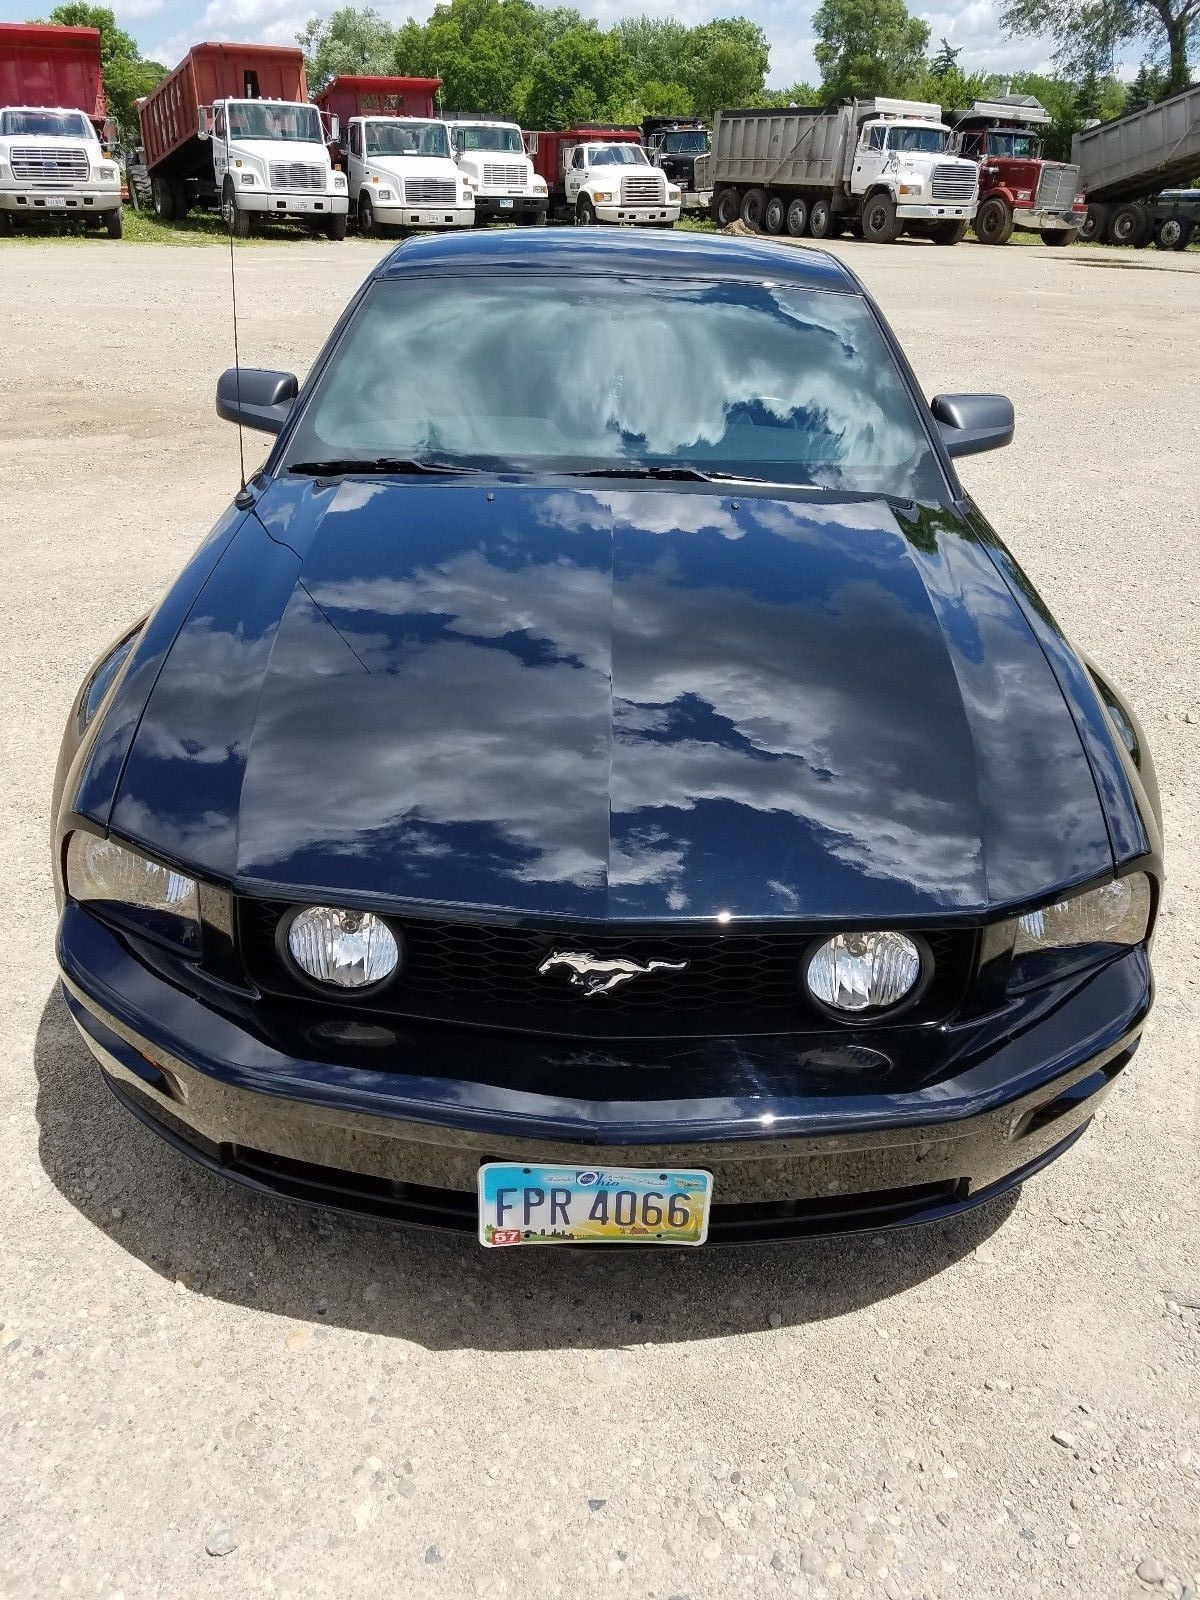 Great 2005 Ford Mustang Gt 21376 Actual Miles Always Garage Kept Never In Snow 2017 2018